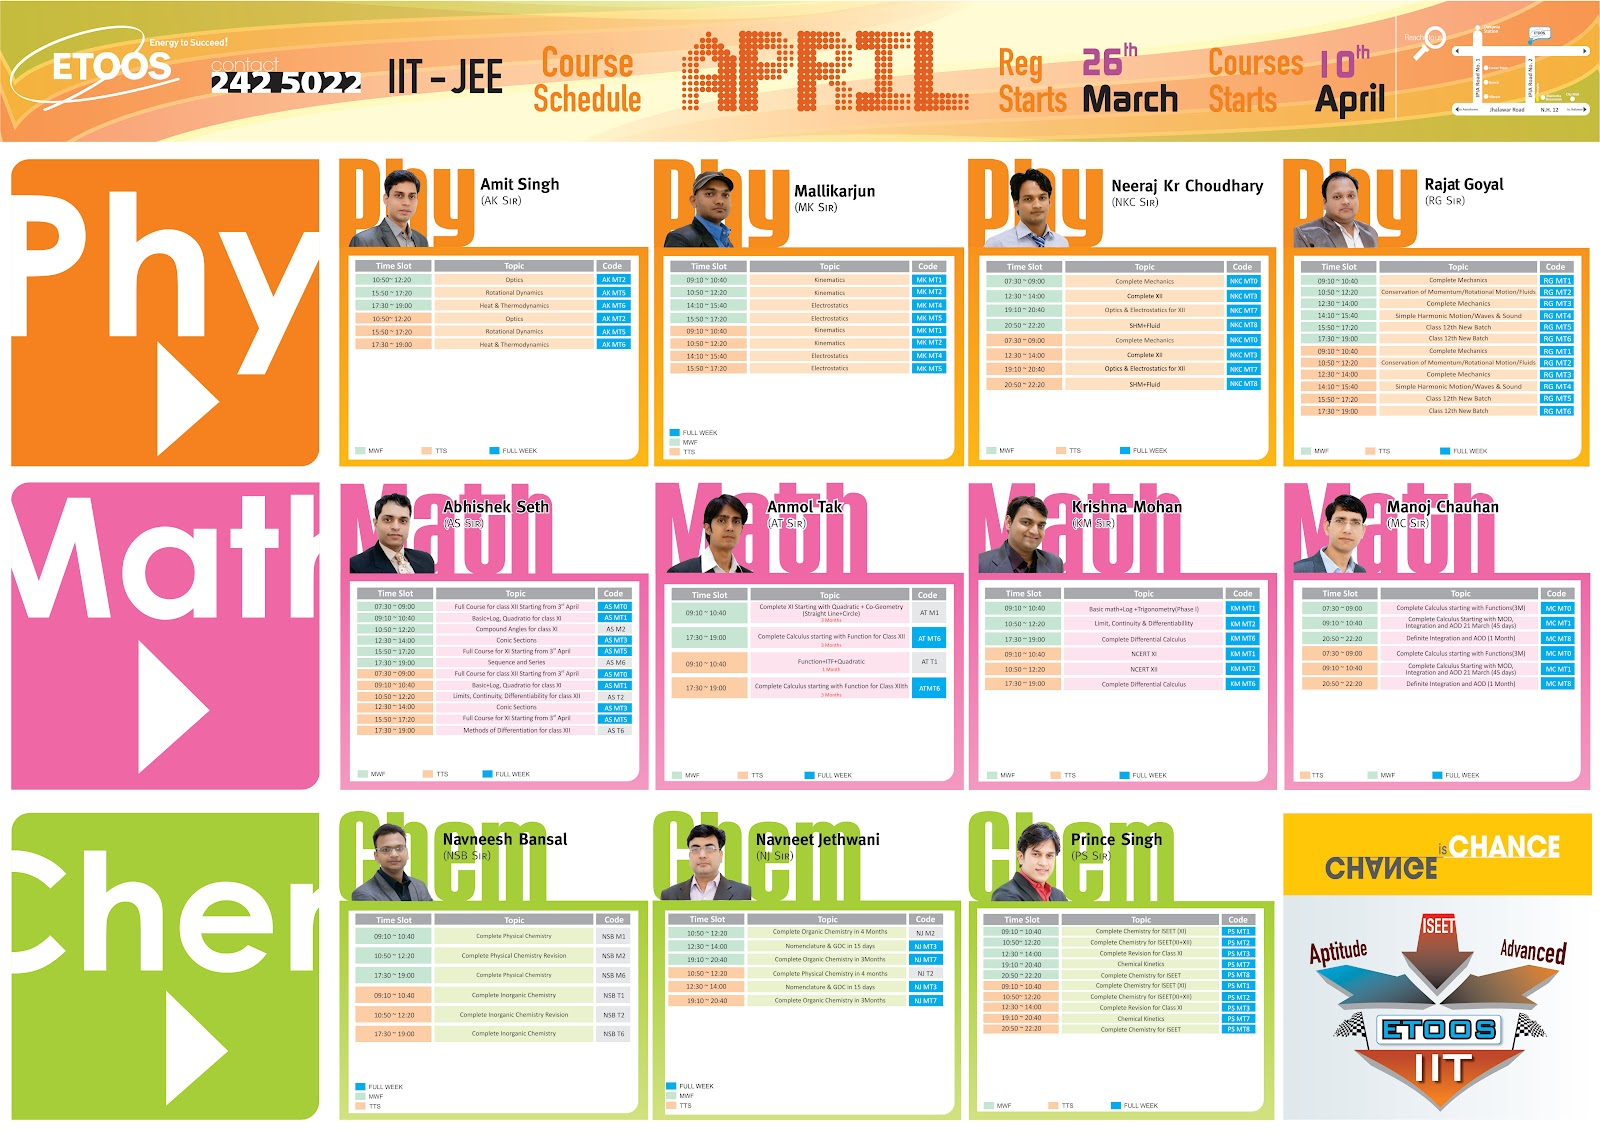 Etoos Academy April 2012 – Personal Time Table Format